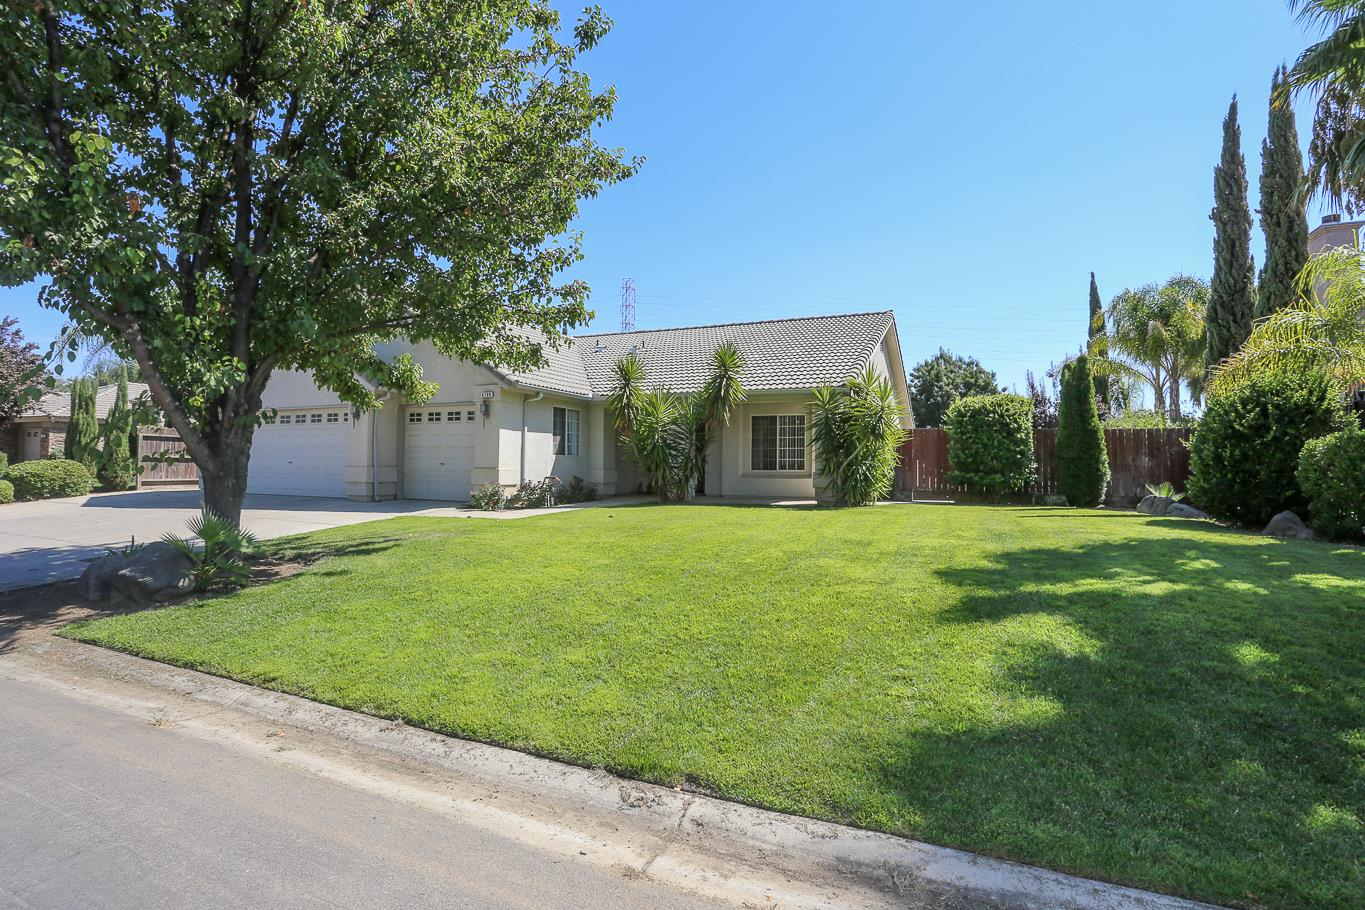 Single Family Home for Sale at 4190 Brentwood Street 4190 Brentwood Street Chowchilla, California 93610 United States